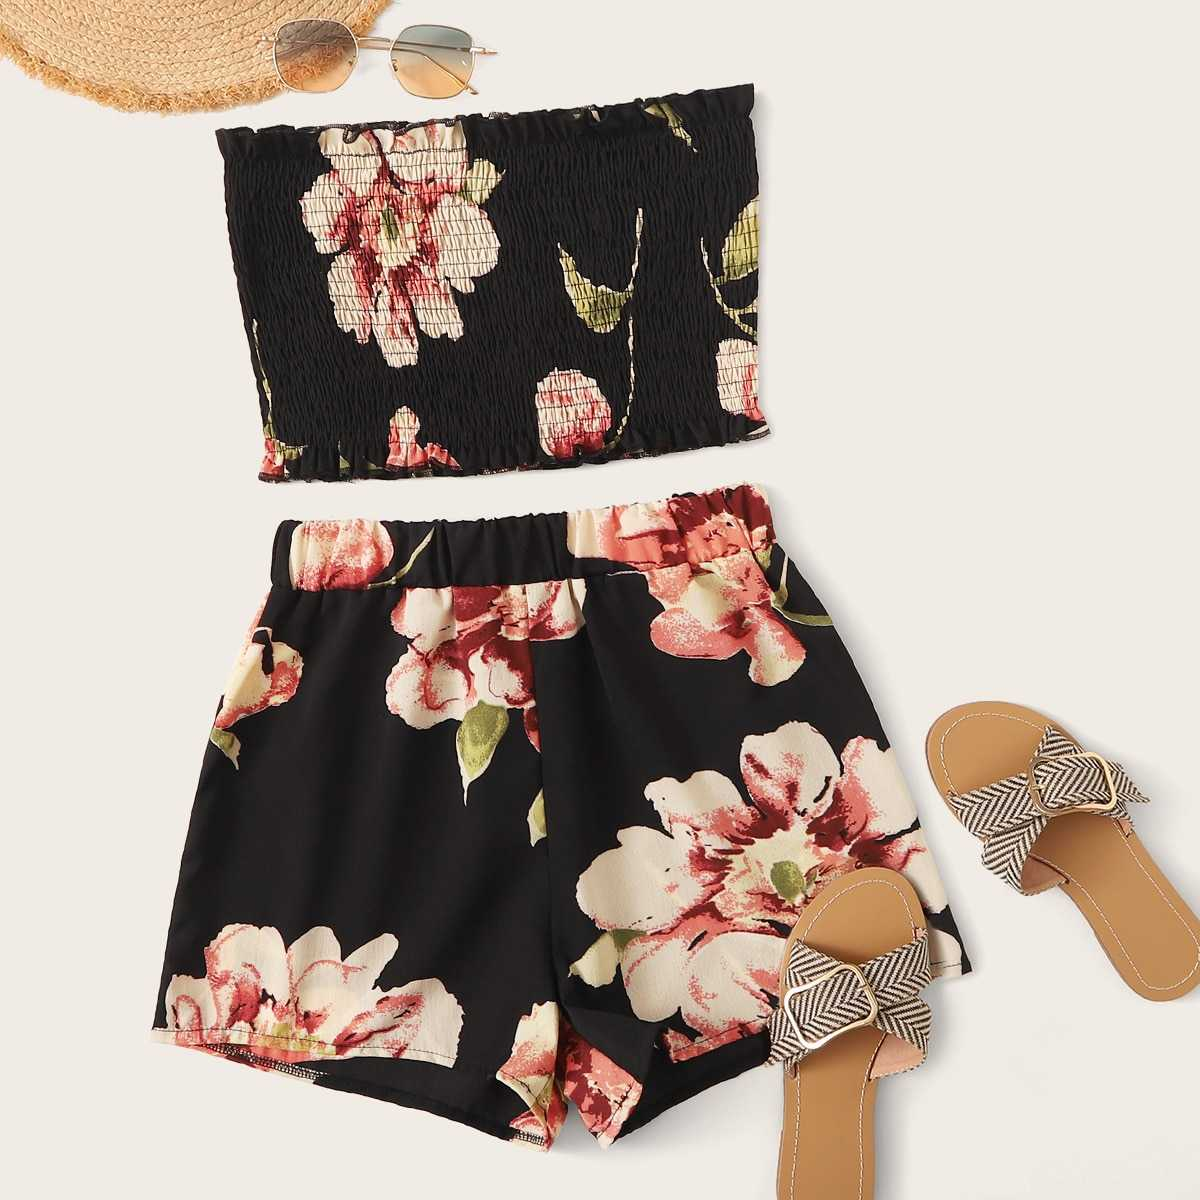 Large Floral Print Shirred Bandeau With Shorts in Black by ROMWE on GOOFASH